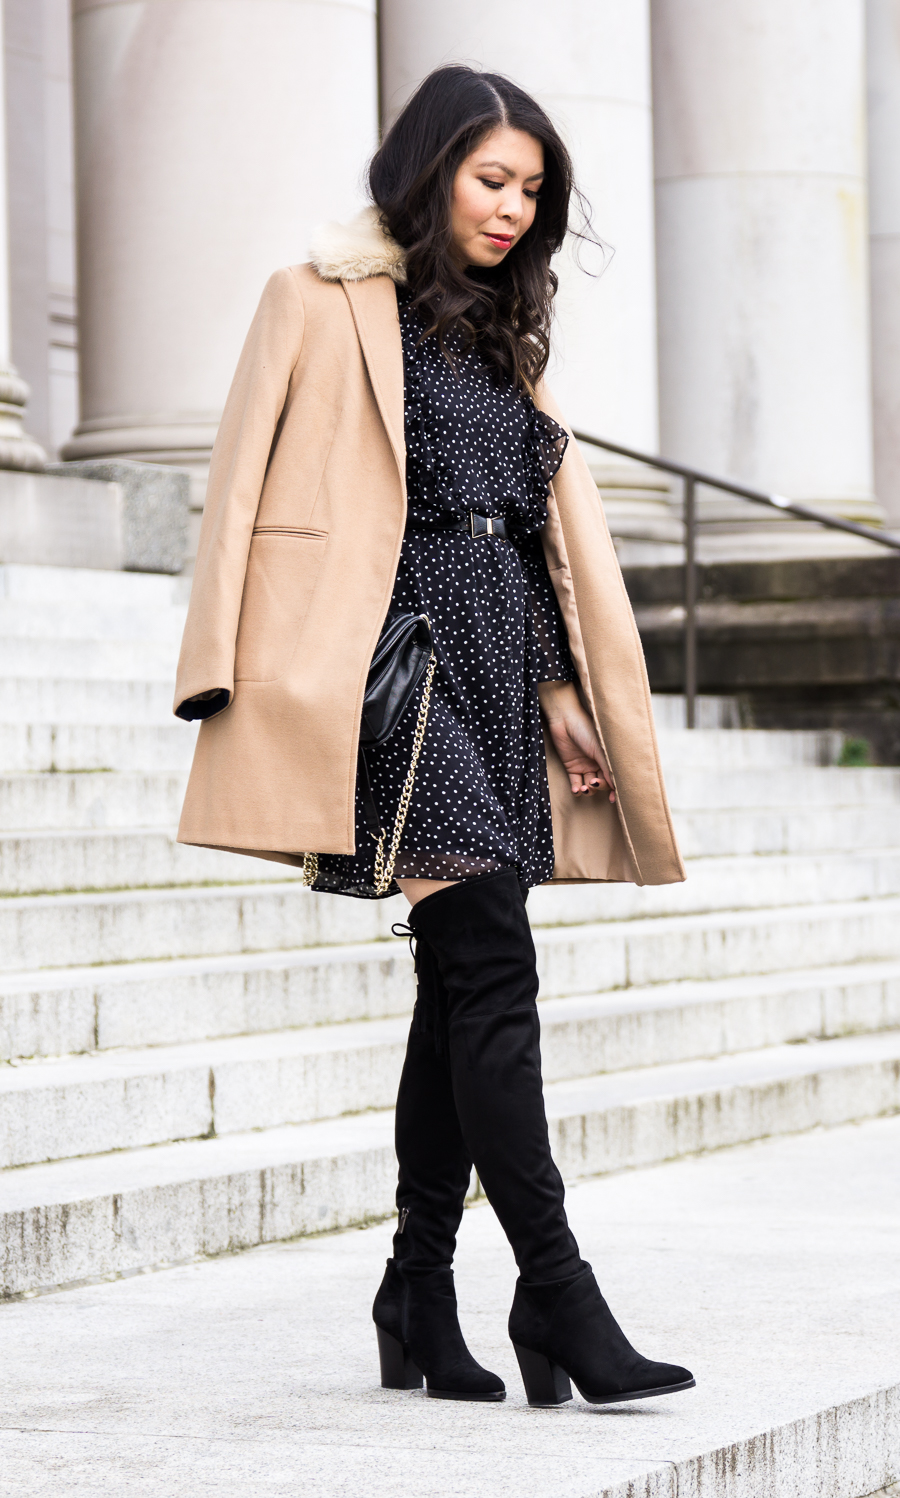 Topshop camel coat, ruffle polka dot dress, Marc Fisher Alinda over the knee boots, winter chic outfit, petite fashion blog